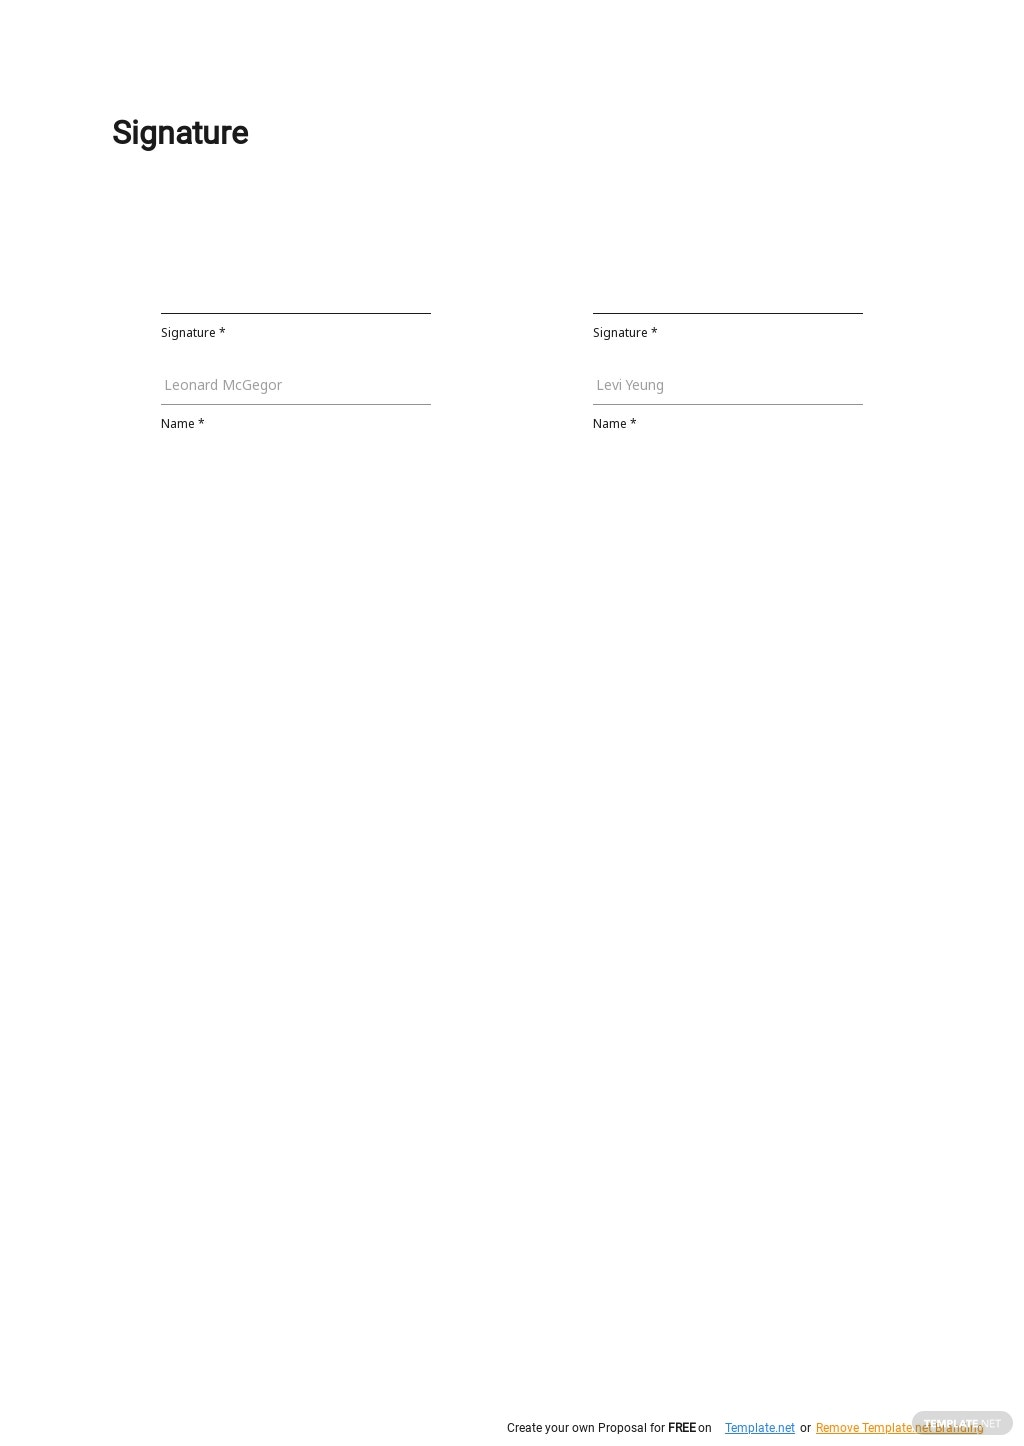 Real Estate Buy Sell Agreement Template 2.jpe